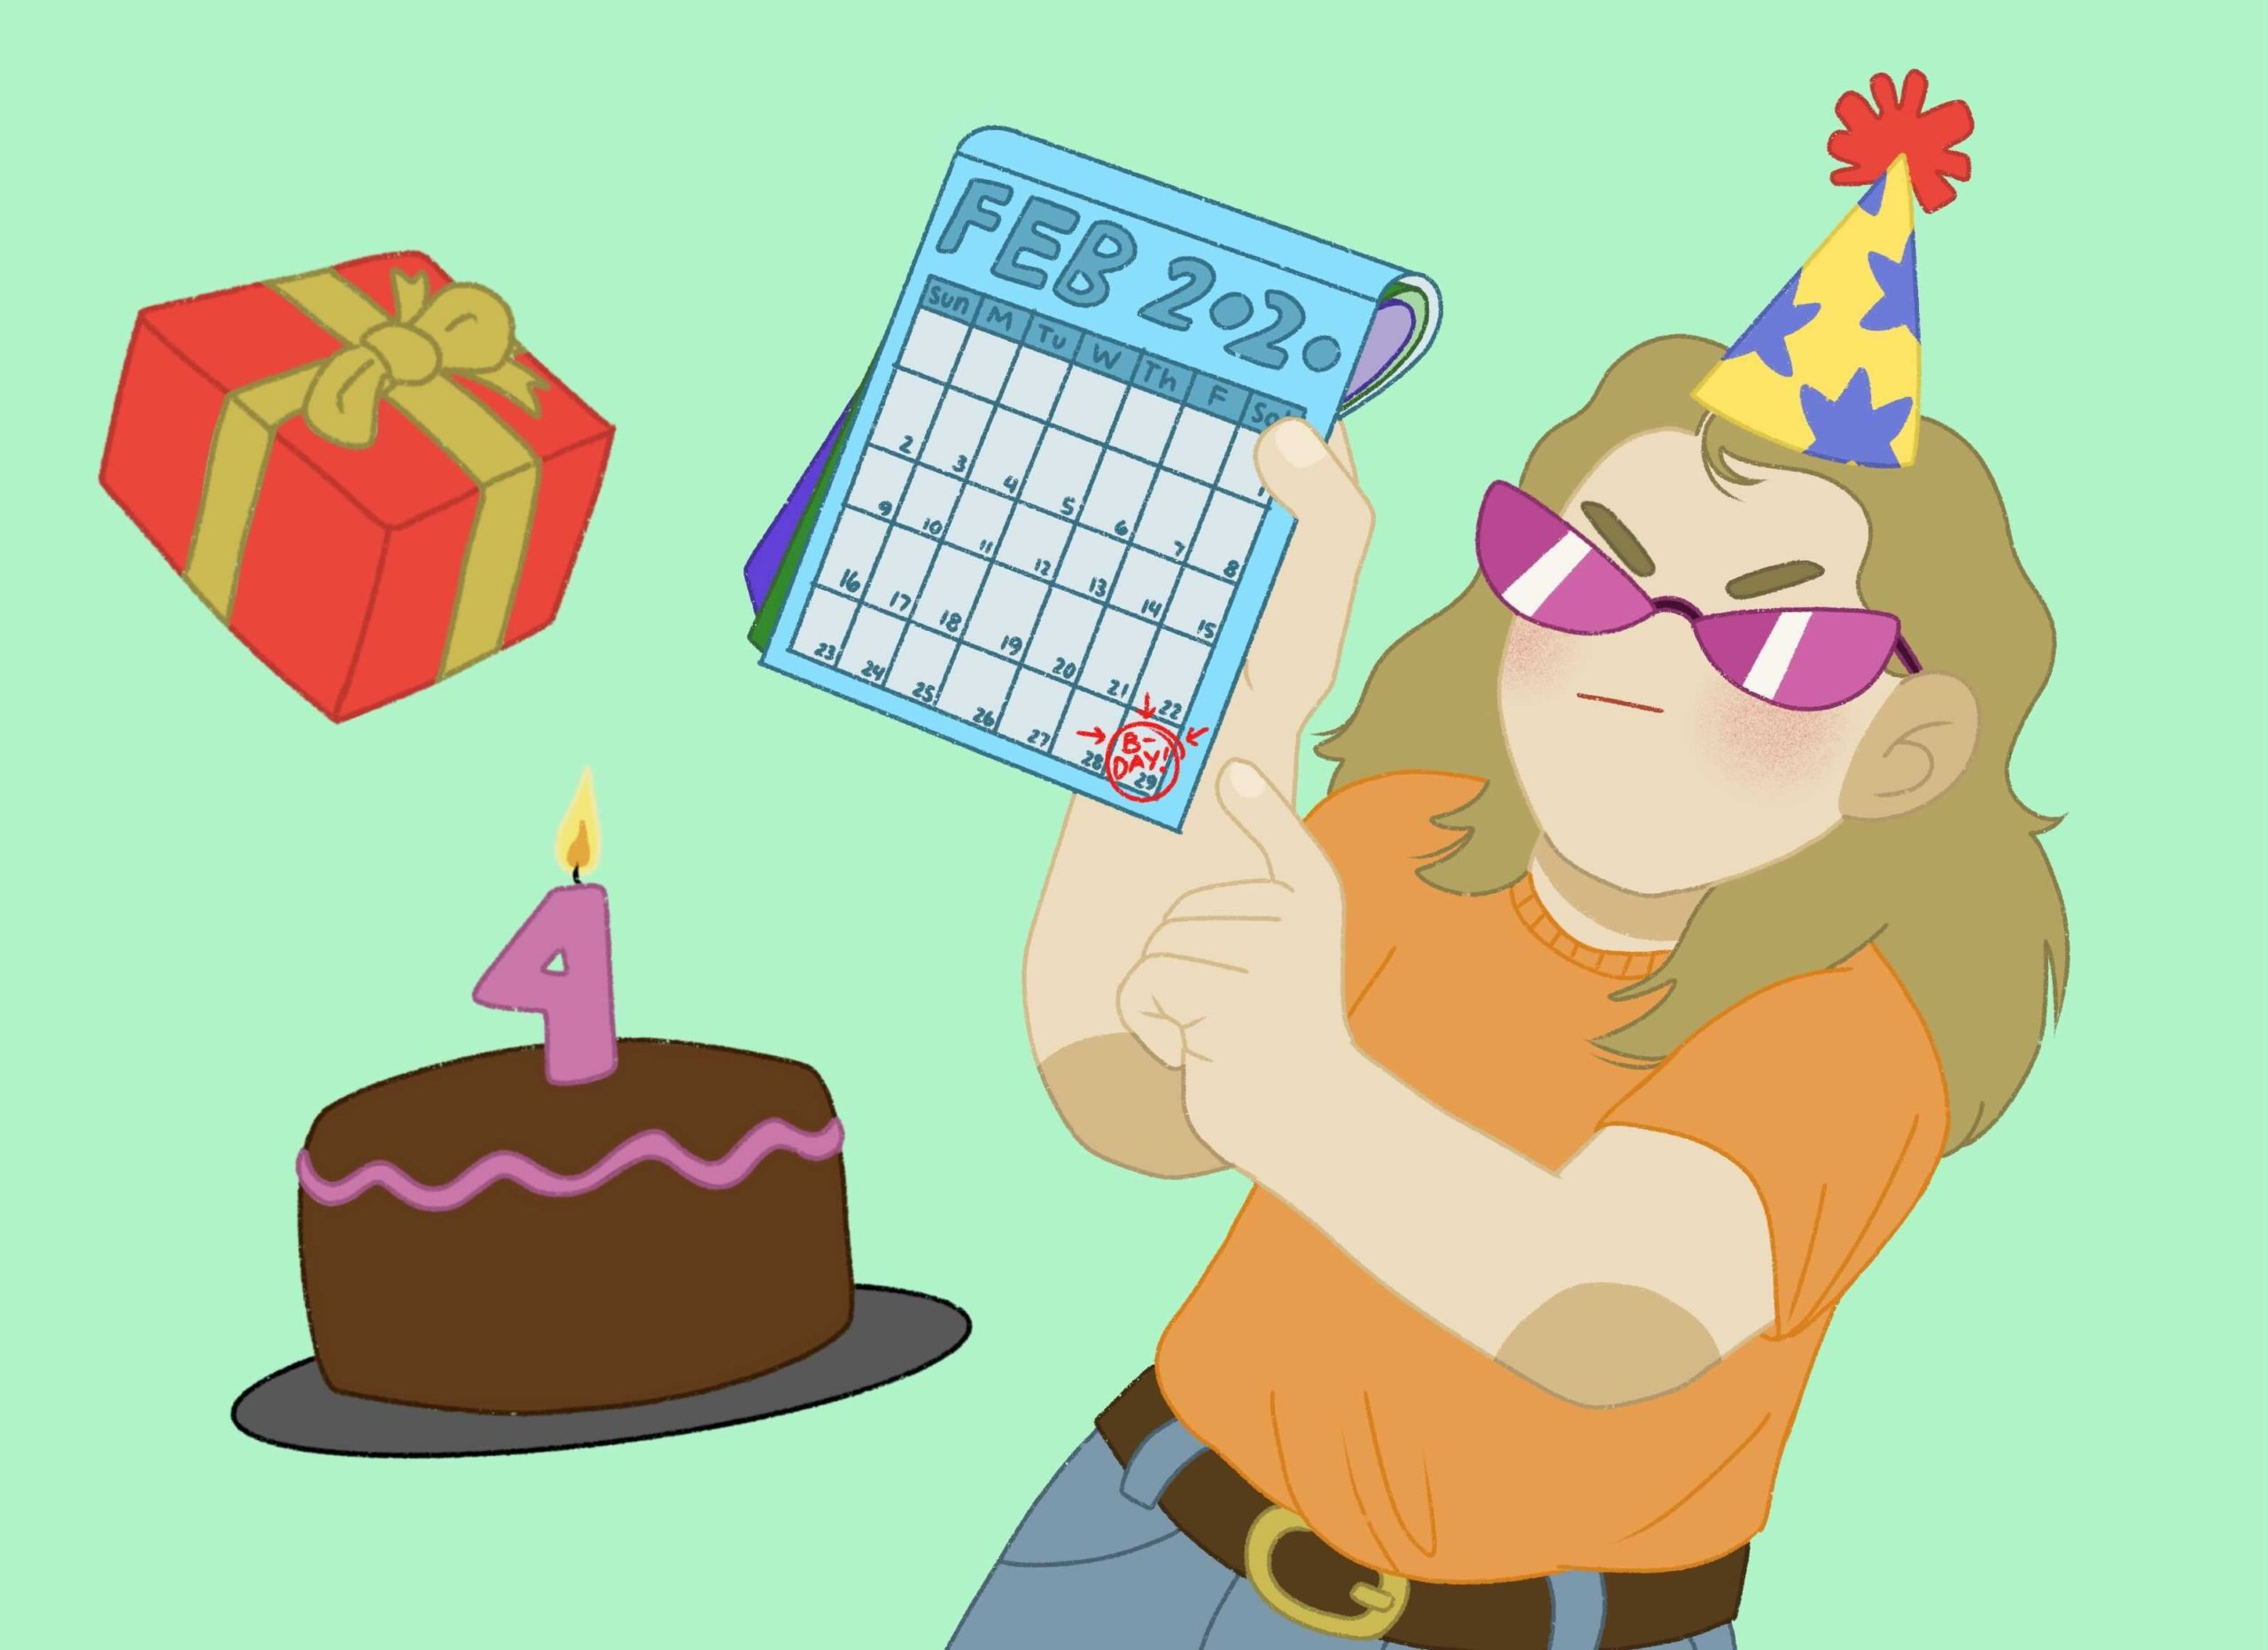 Opinion: Why It's Better to be Born on February 29th